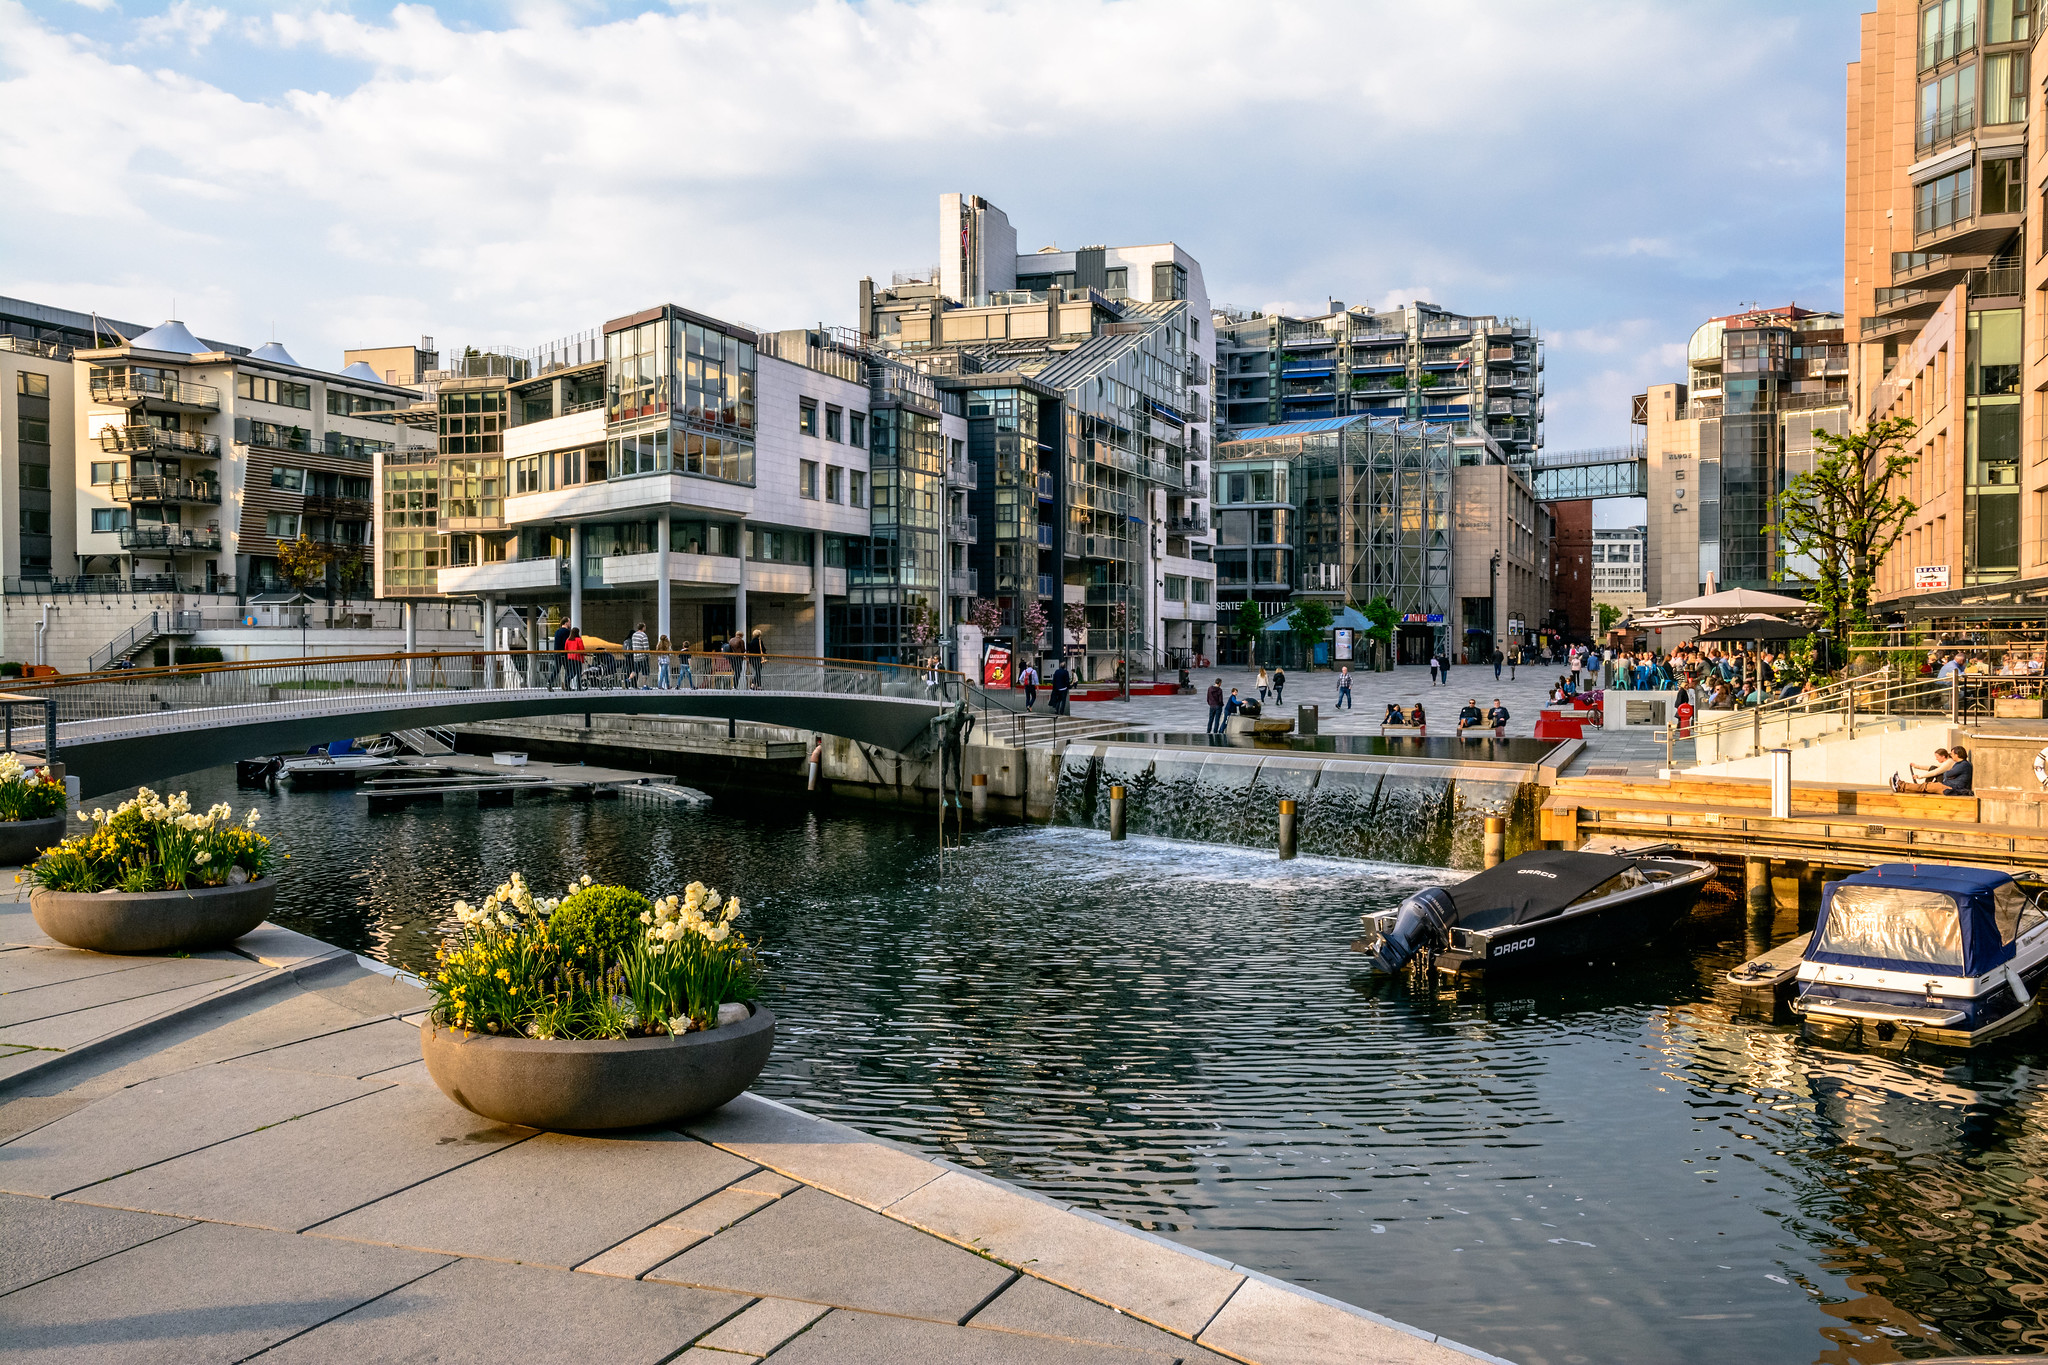 Oslo, Norway - photo by dconvertini under CC BY-SA 2.0